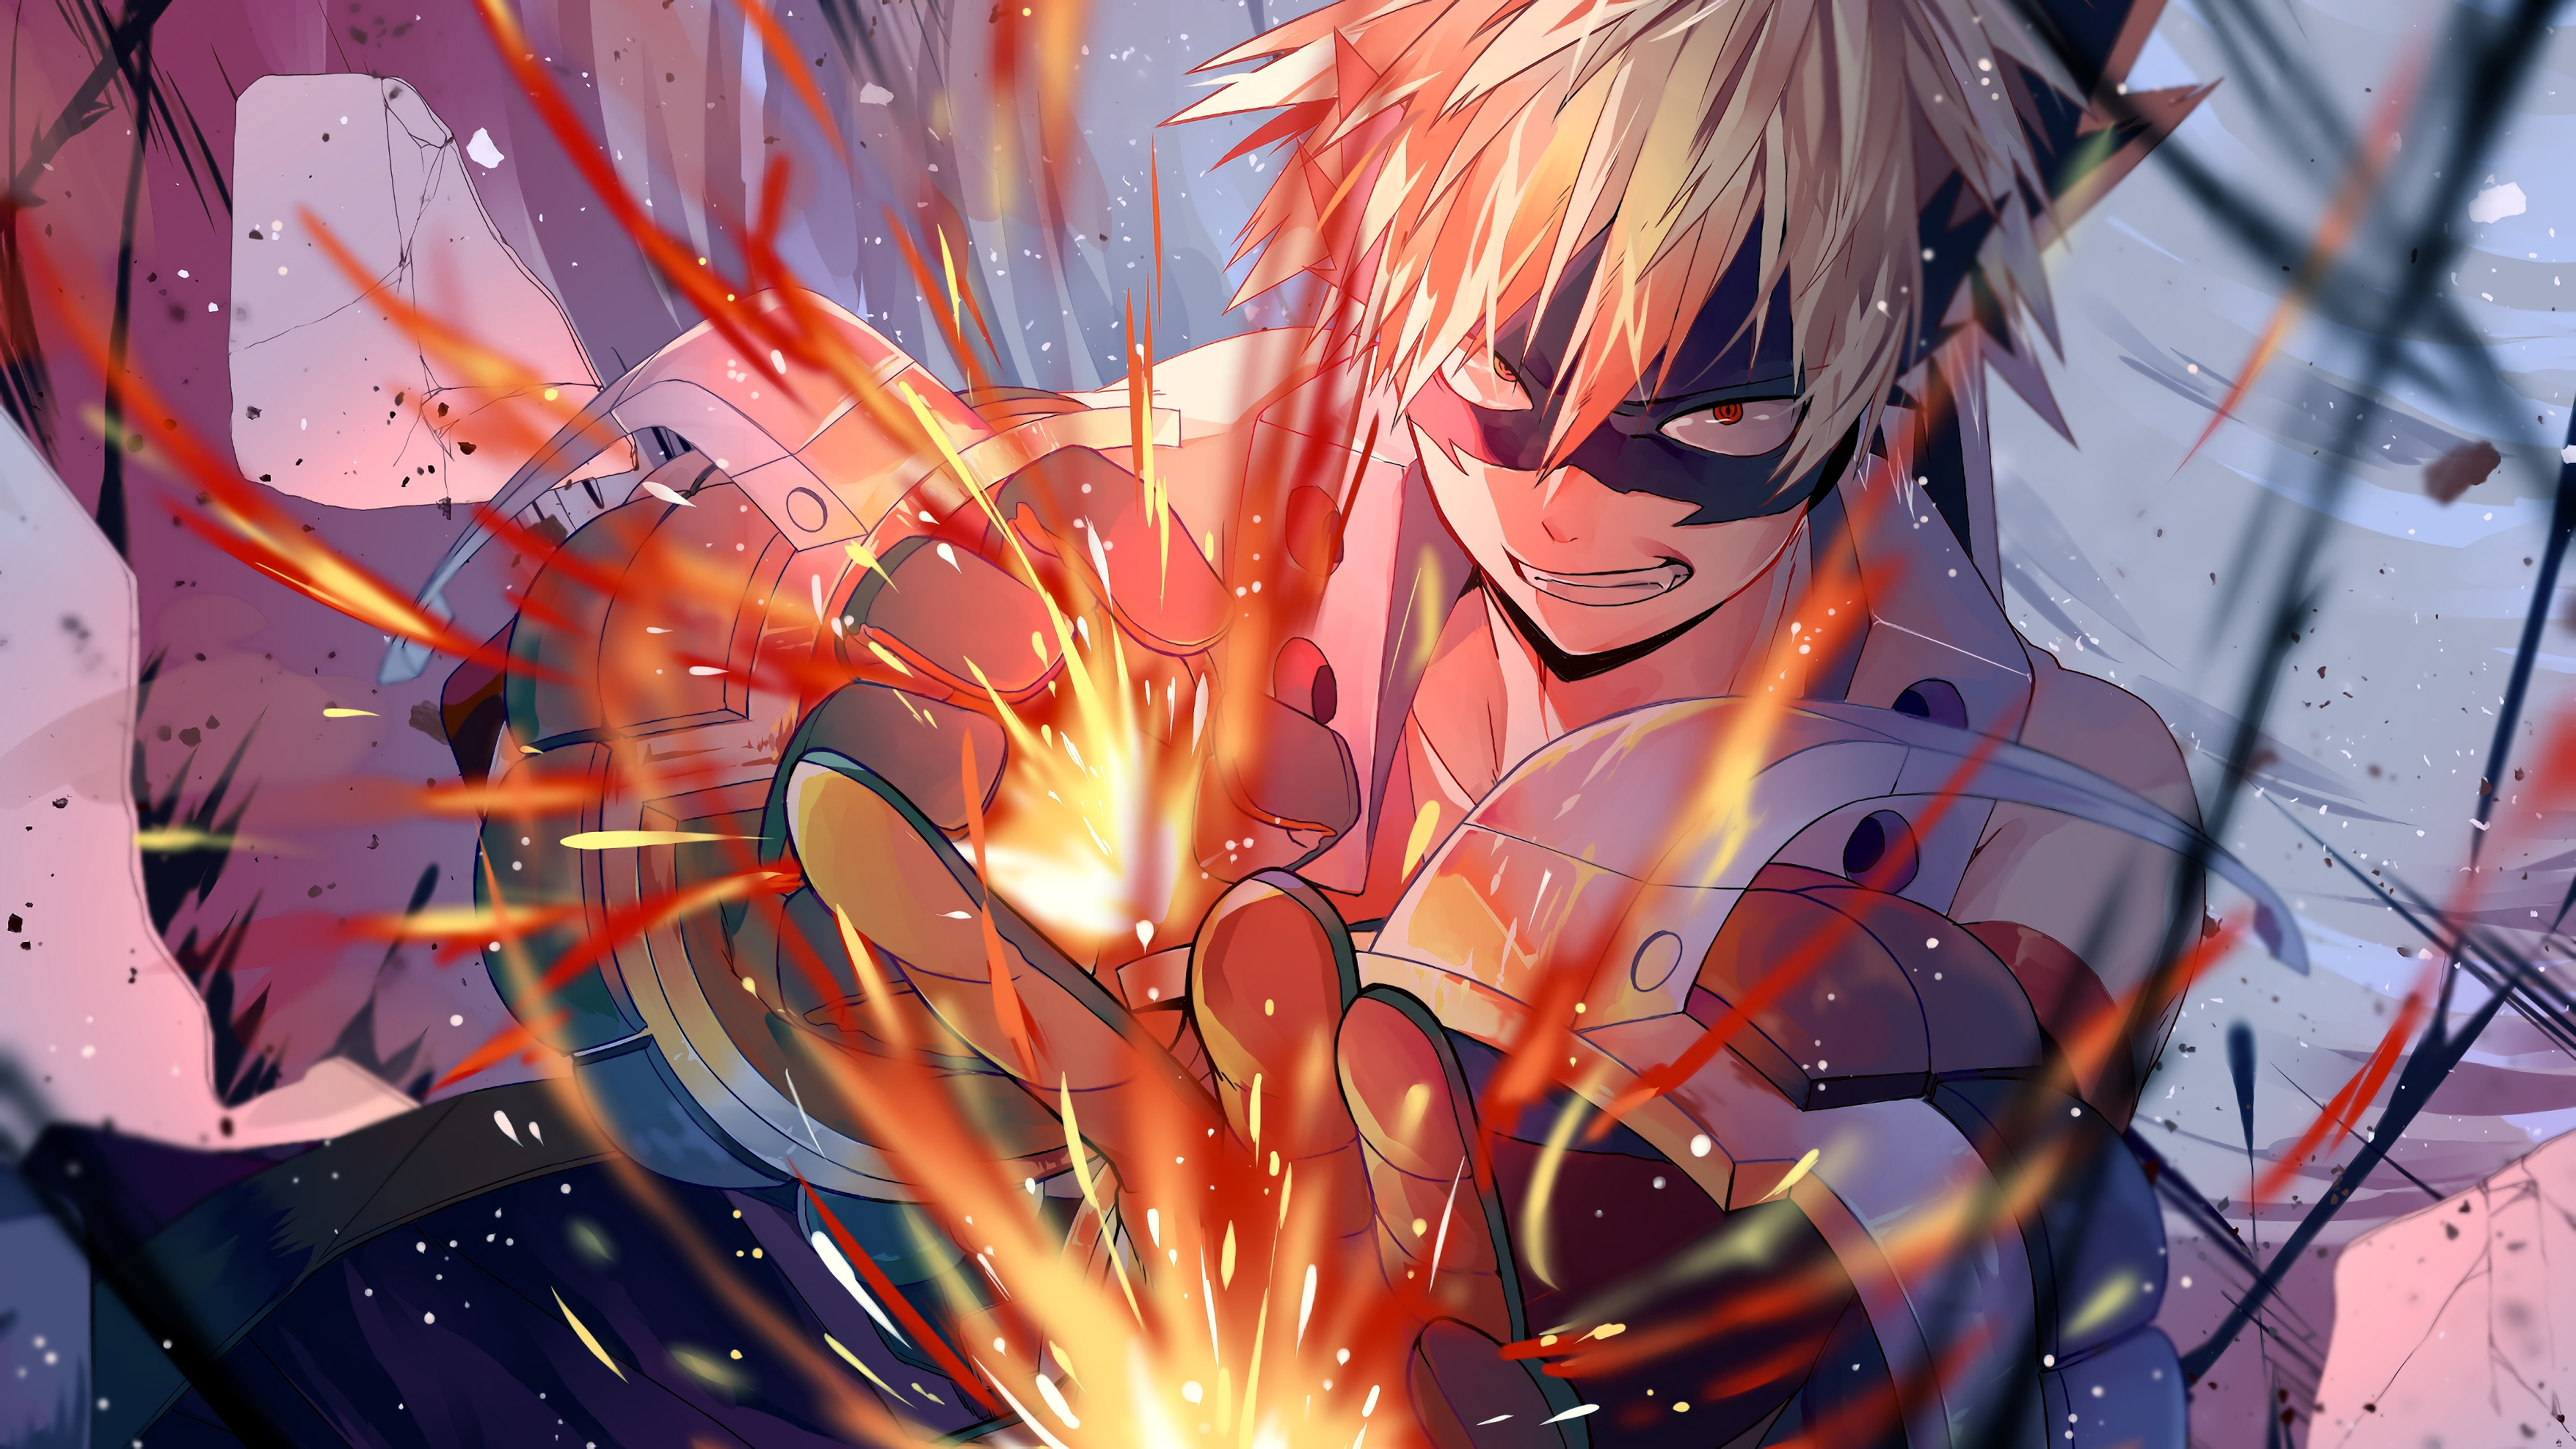 Wallpaper 4k Katsuki Bakugou My Hero Academic 4k 4k Wallpapers